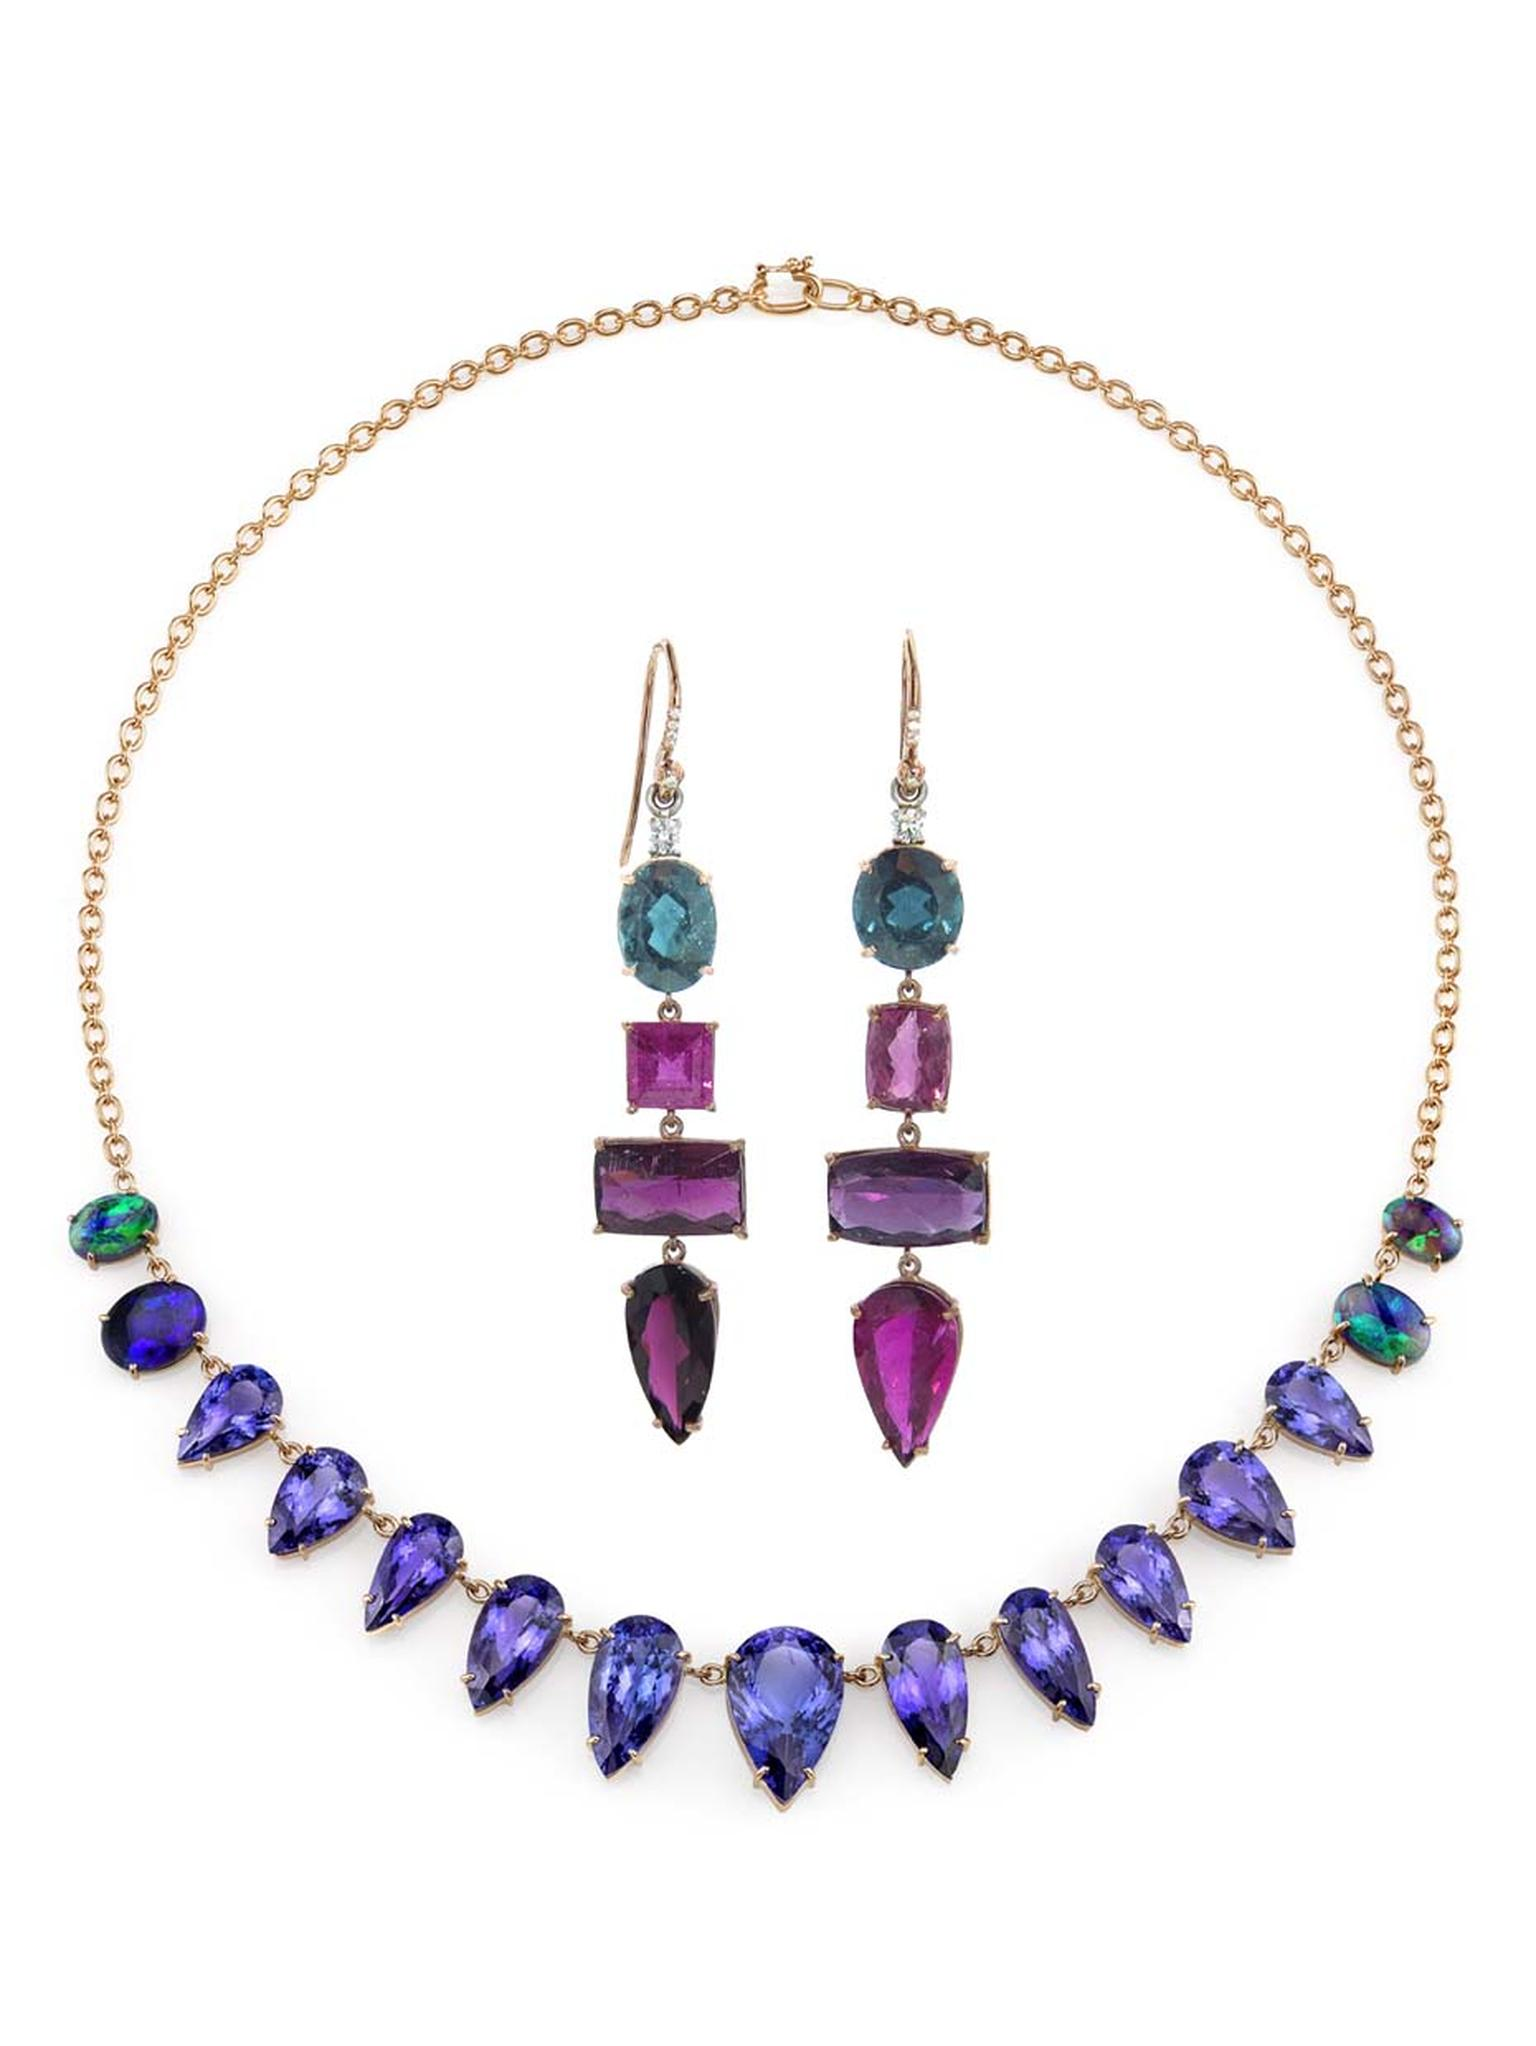 From Ylang23, Irene Neuwirth's one-of-a-kind tanzanite necklace and pink tourmaline, indicolite and diamond earrings.